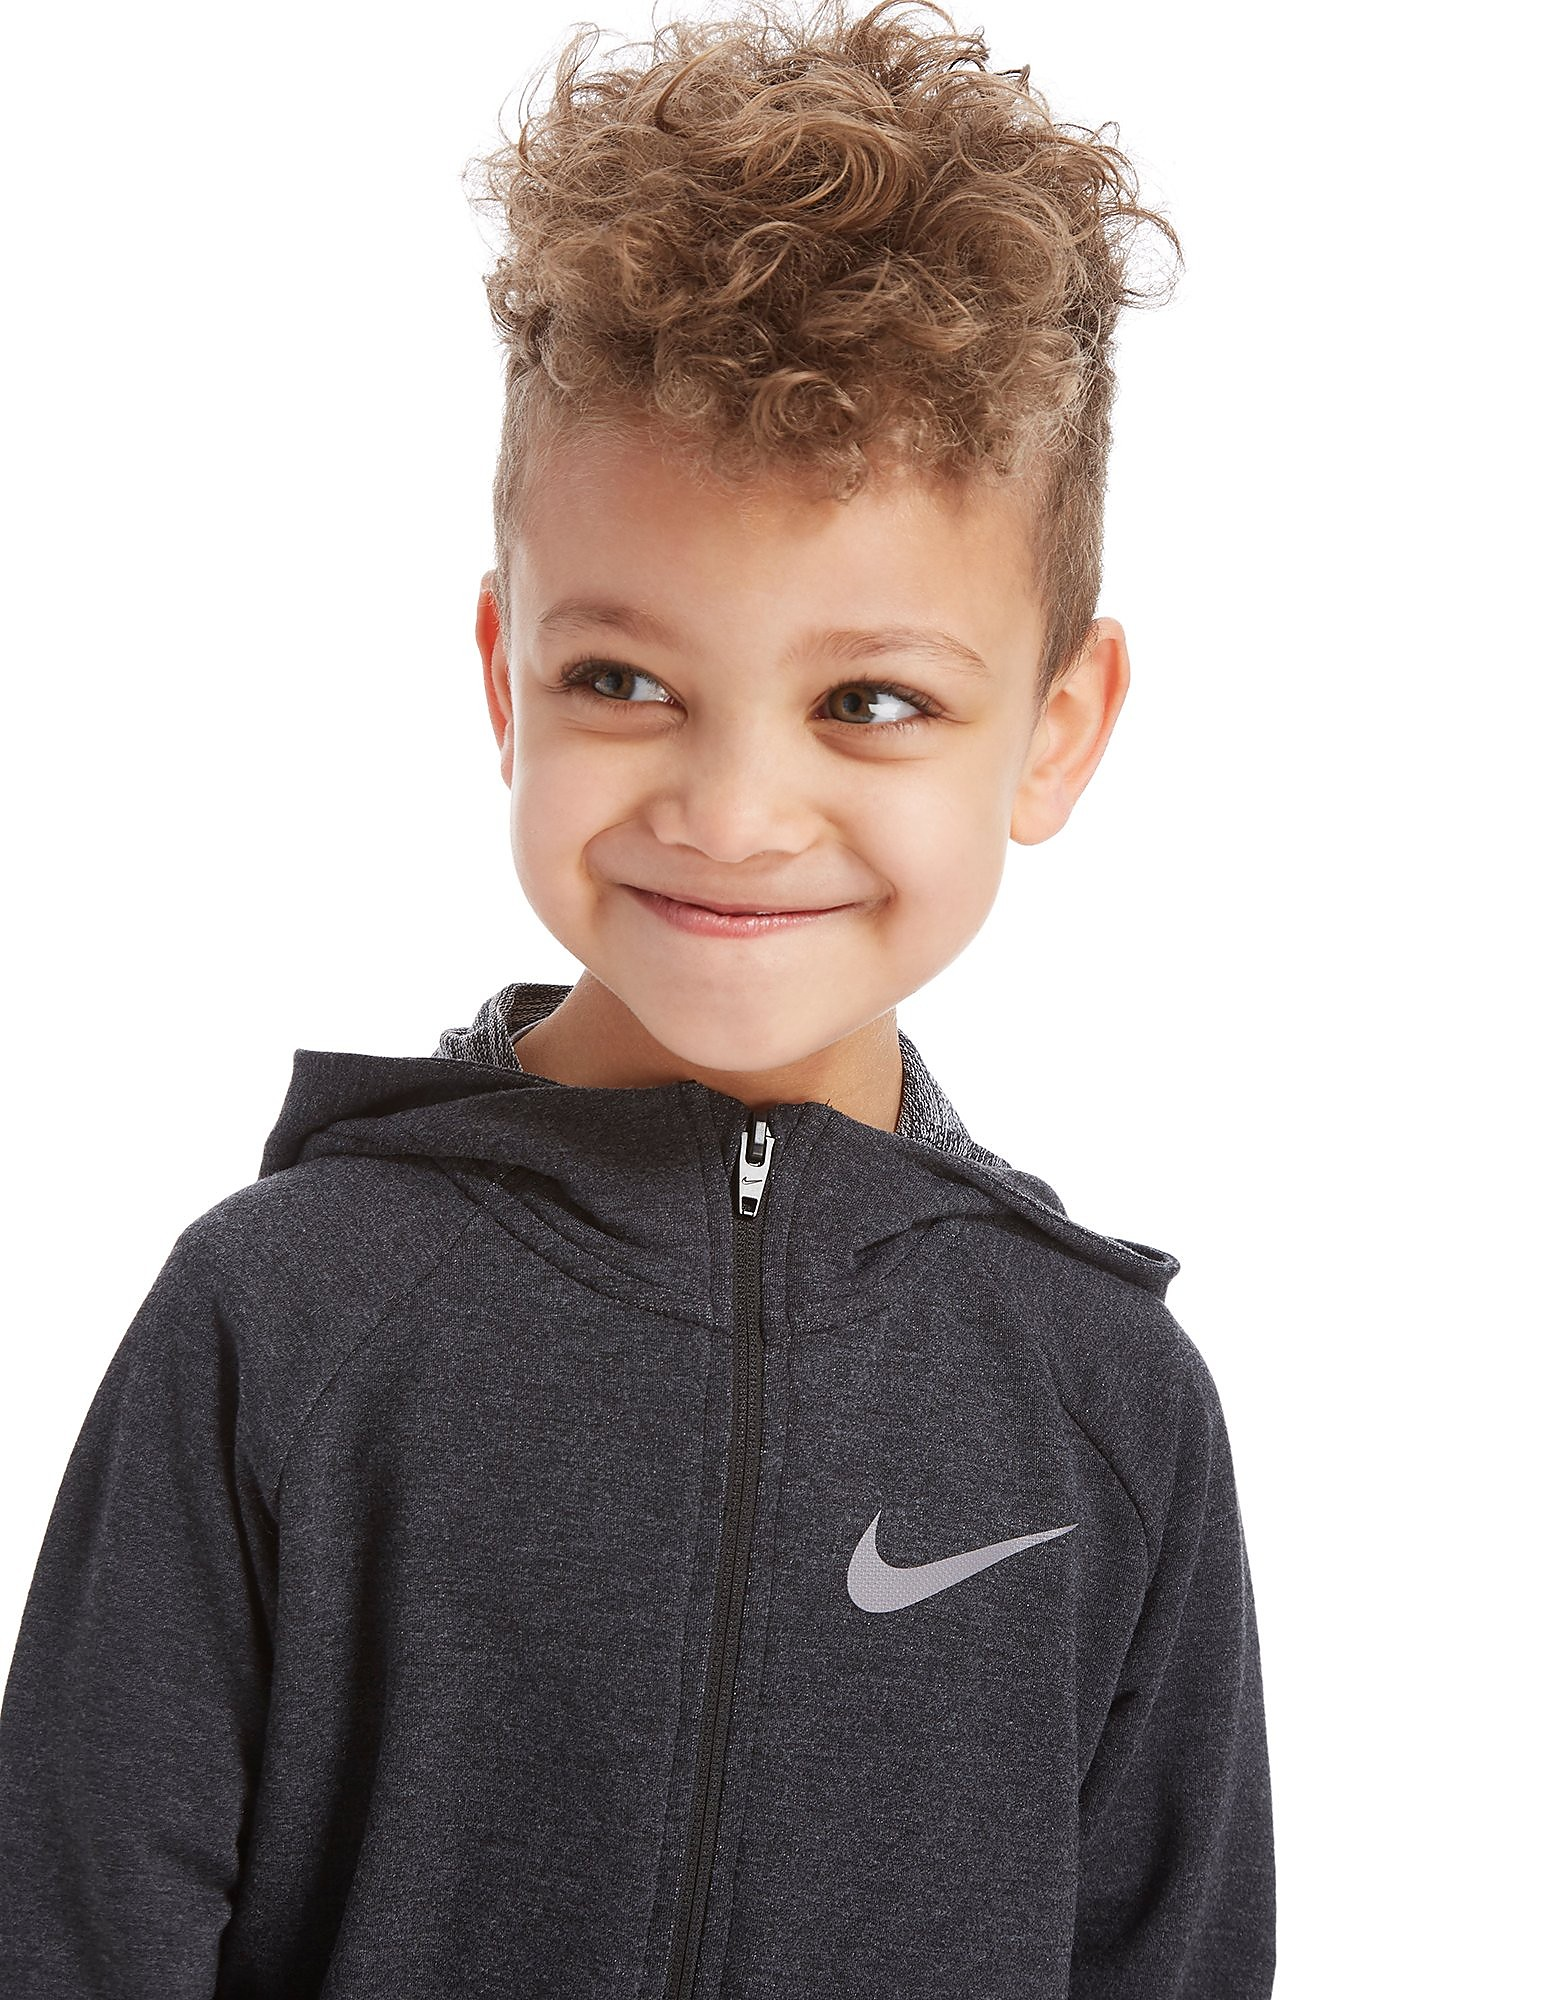 Nike Dri-FIT Full Zip Hoodie Children